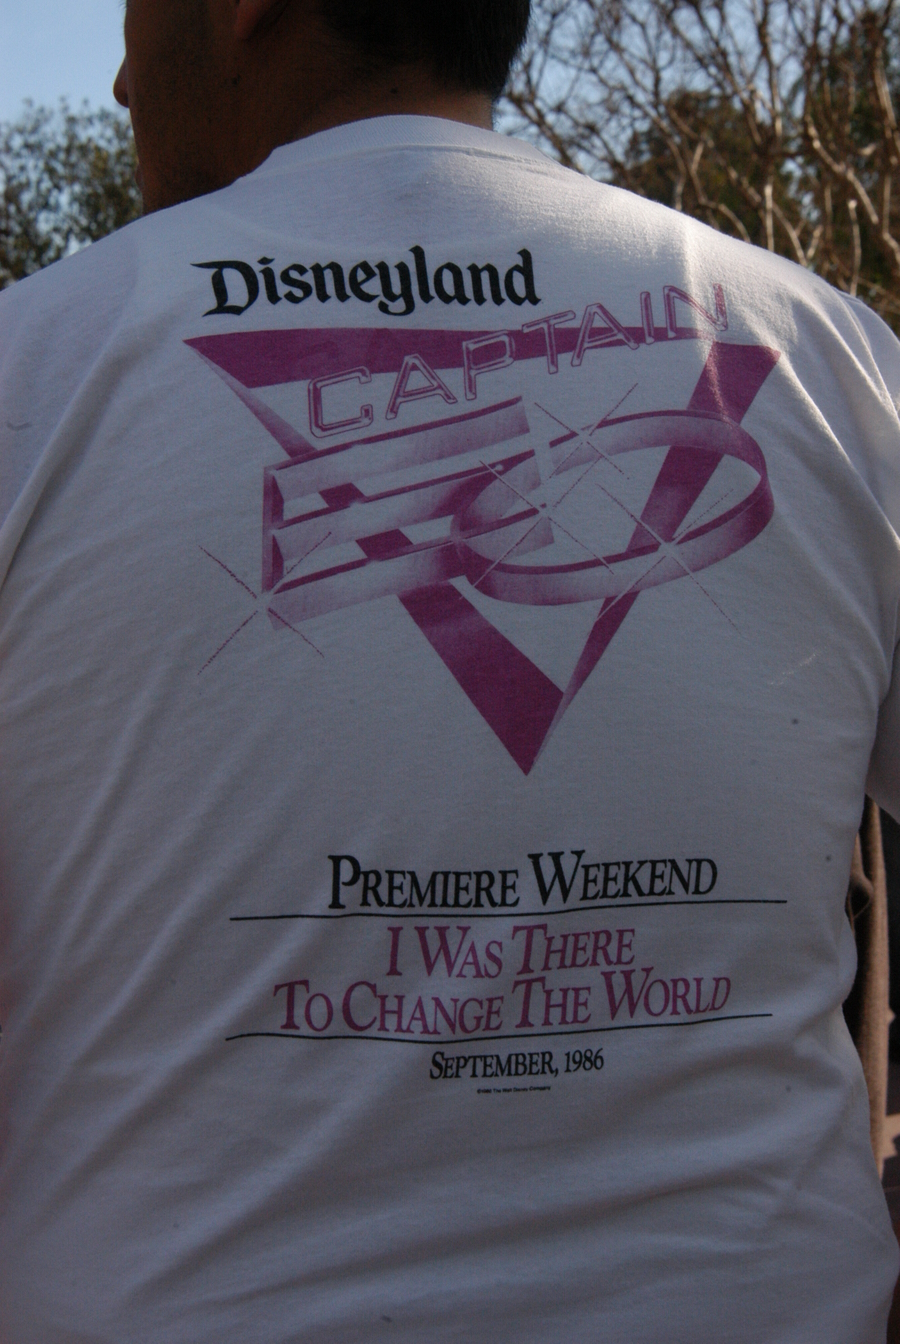 14f11e44c1d Mouseplanet - Captain EO Tribute debuts at Disneyland by Adrienne ...